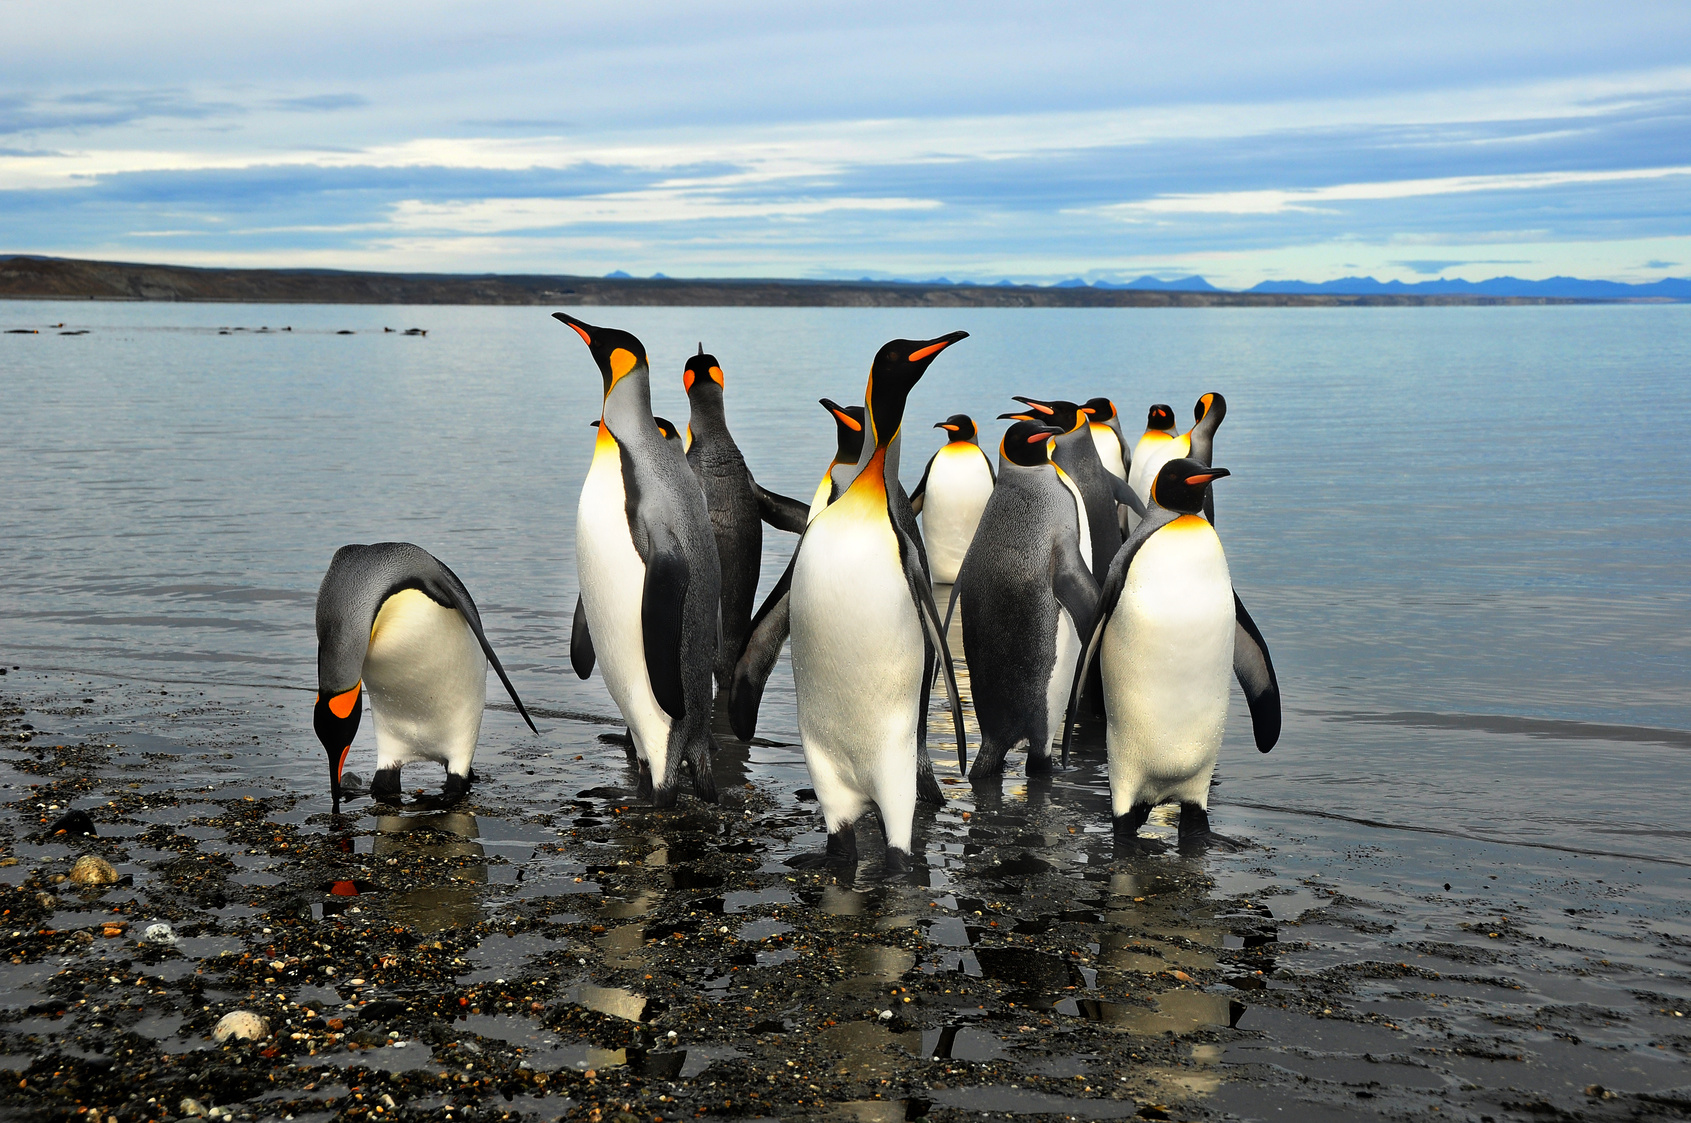 TDF-Group-of-King-Penguins-on-Beach-5-8-2020